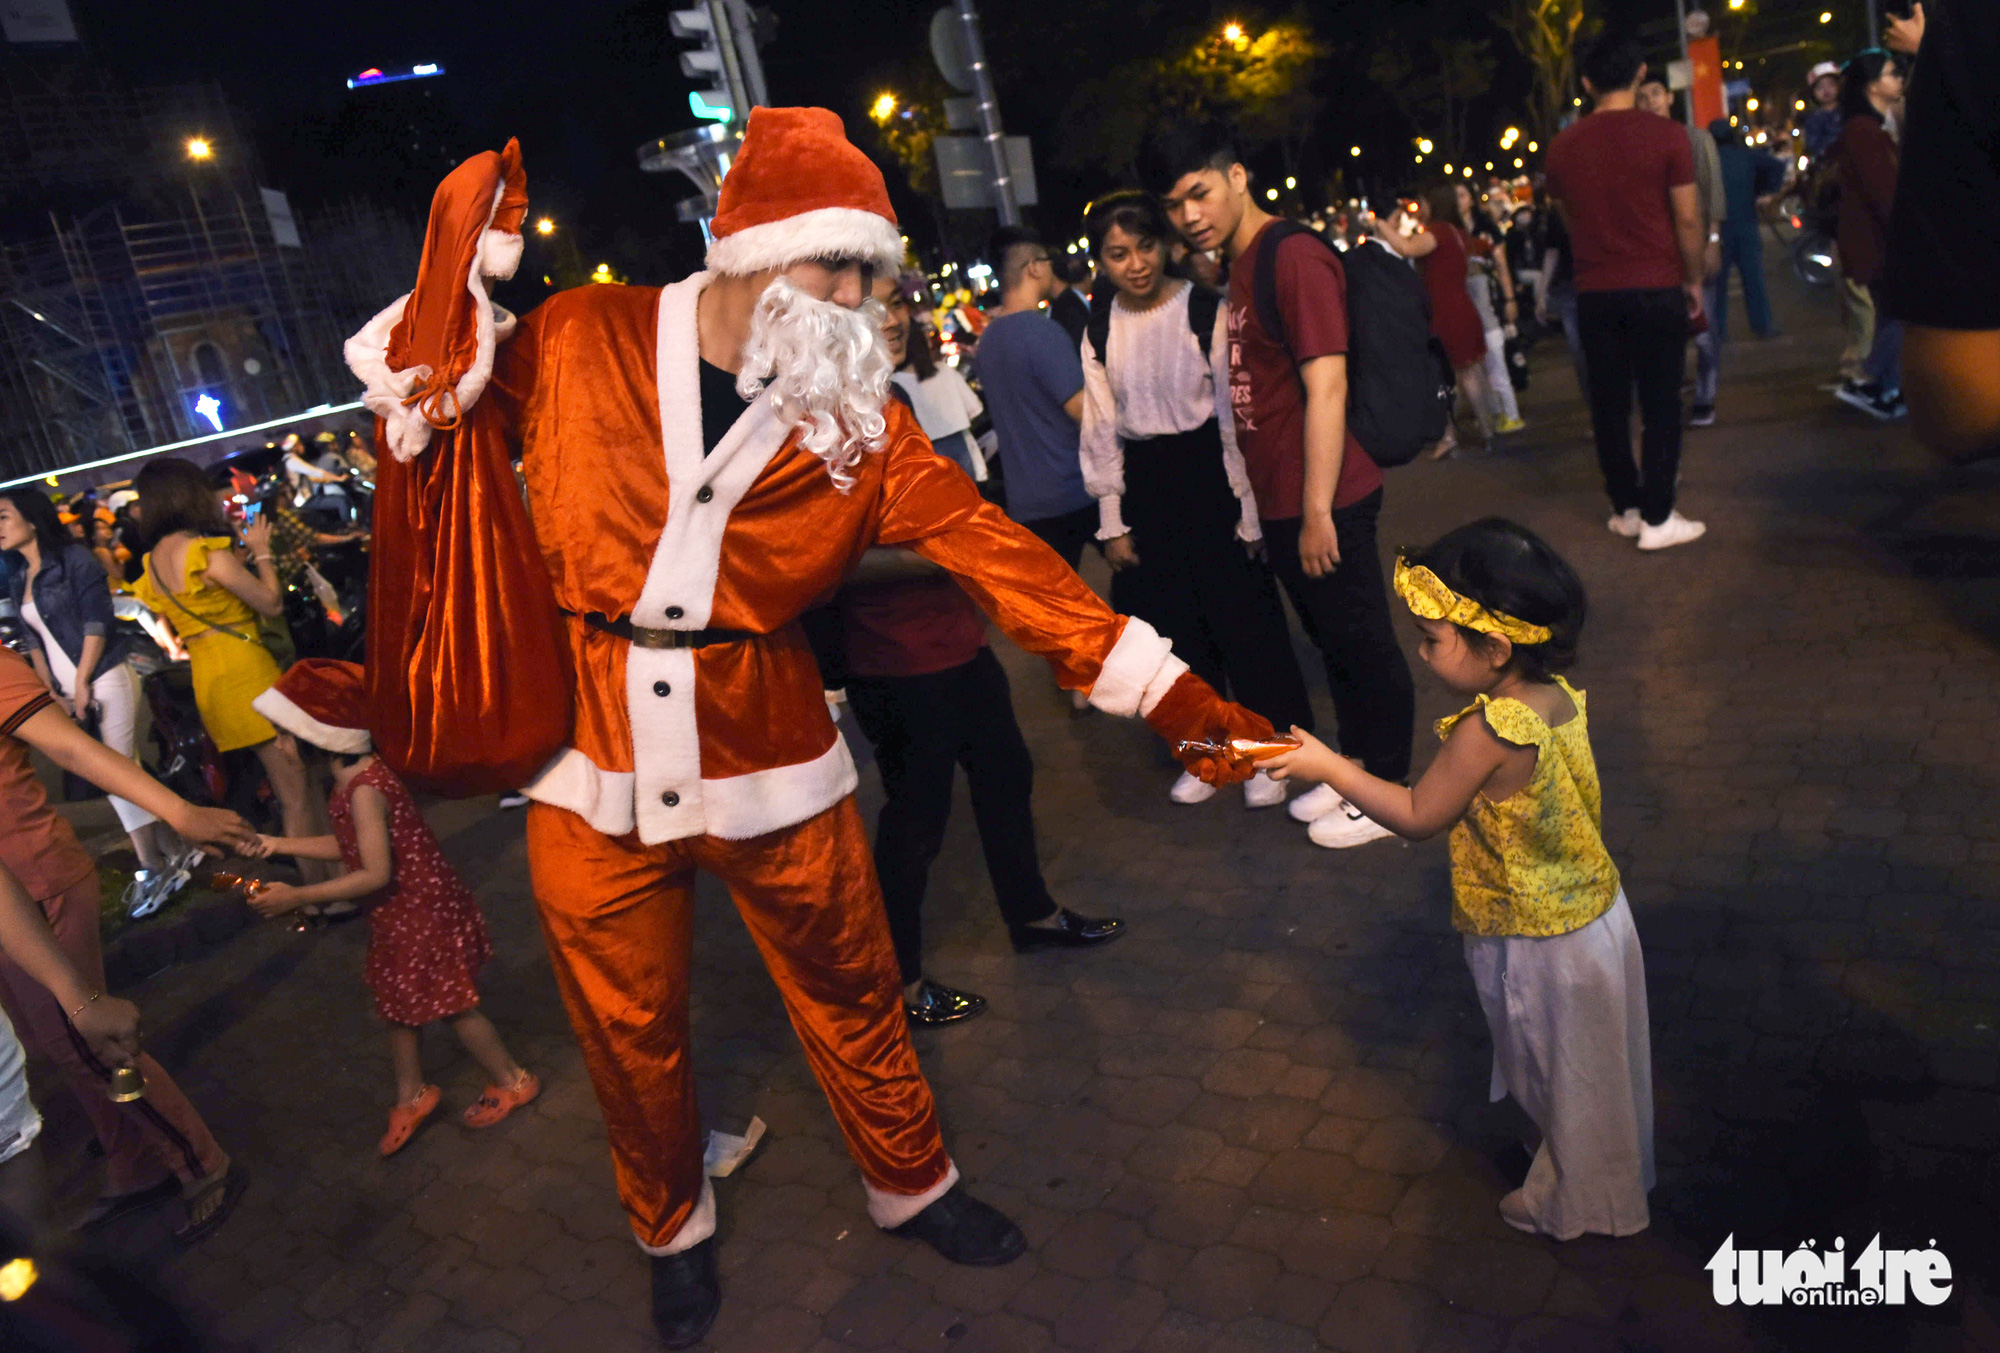 A man dressed as Santa Claus gives a present to a young girl in downtown Ho Chi Minh City on Christmas Eve, December 24, 2019.